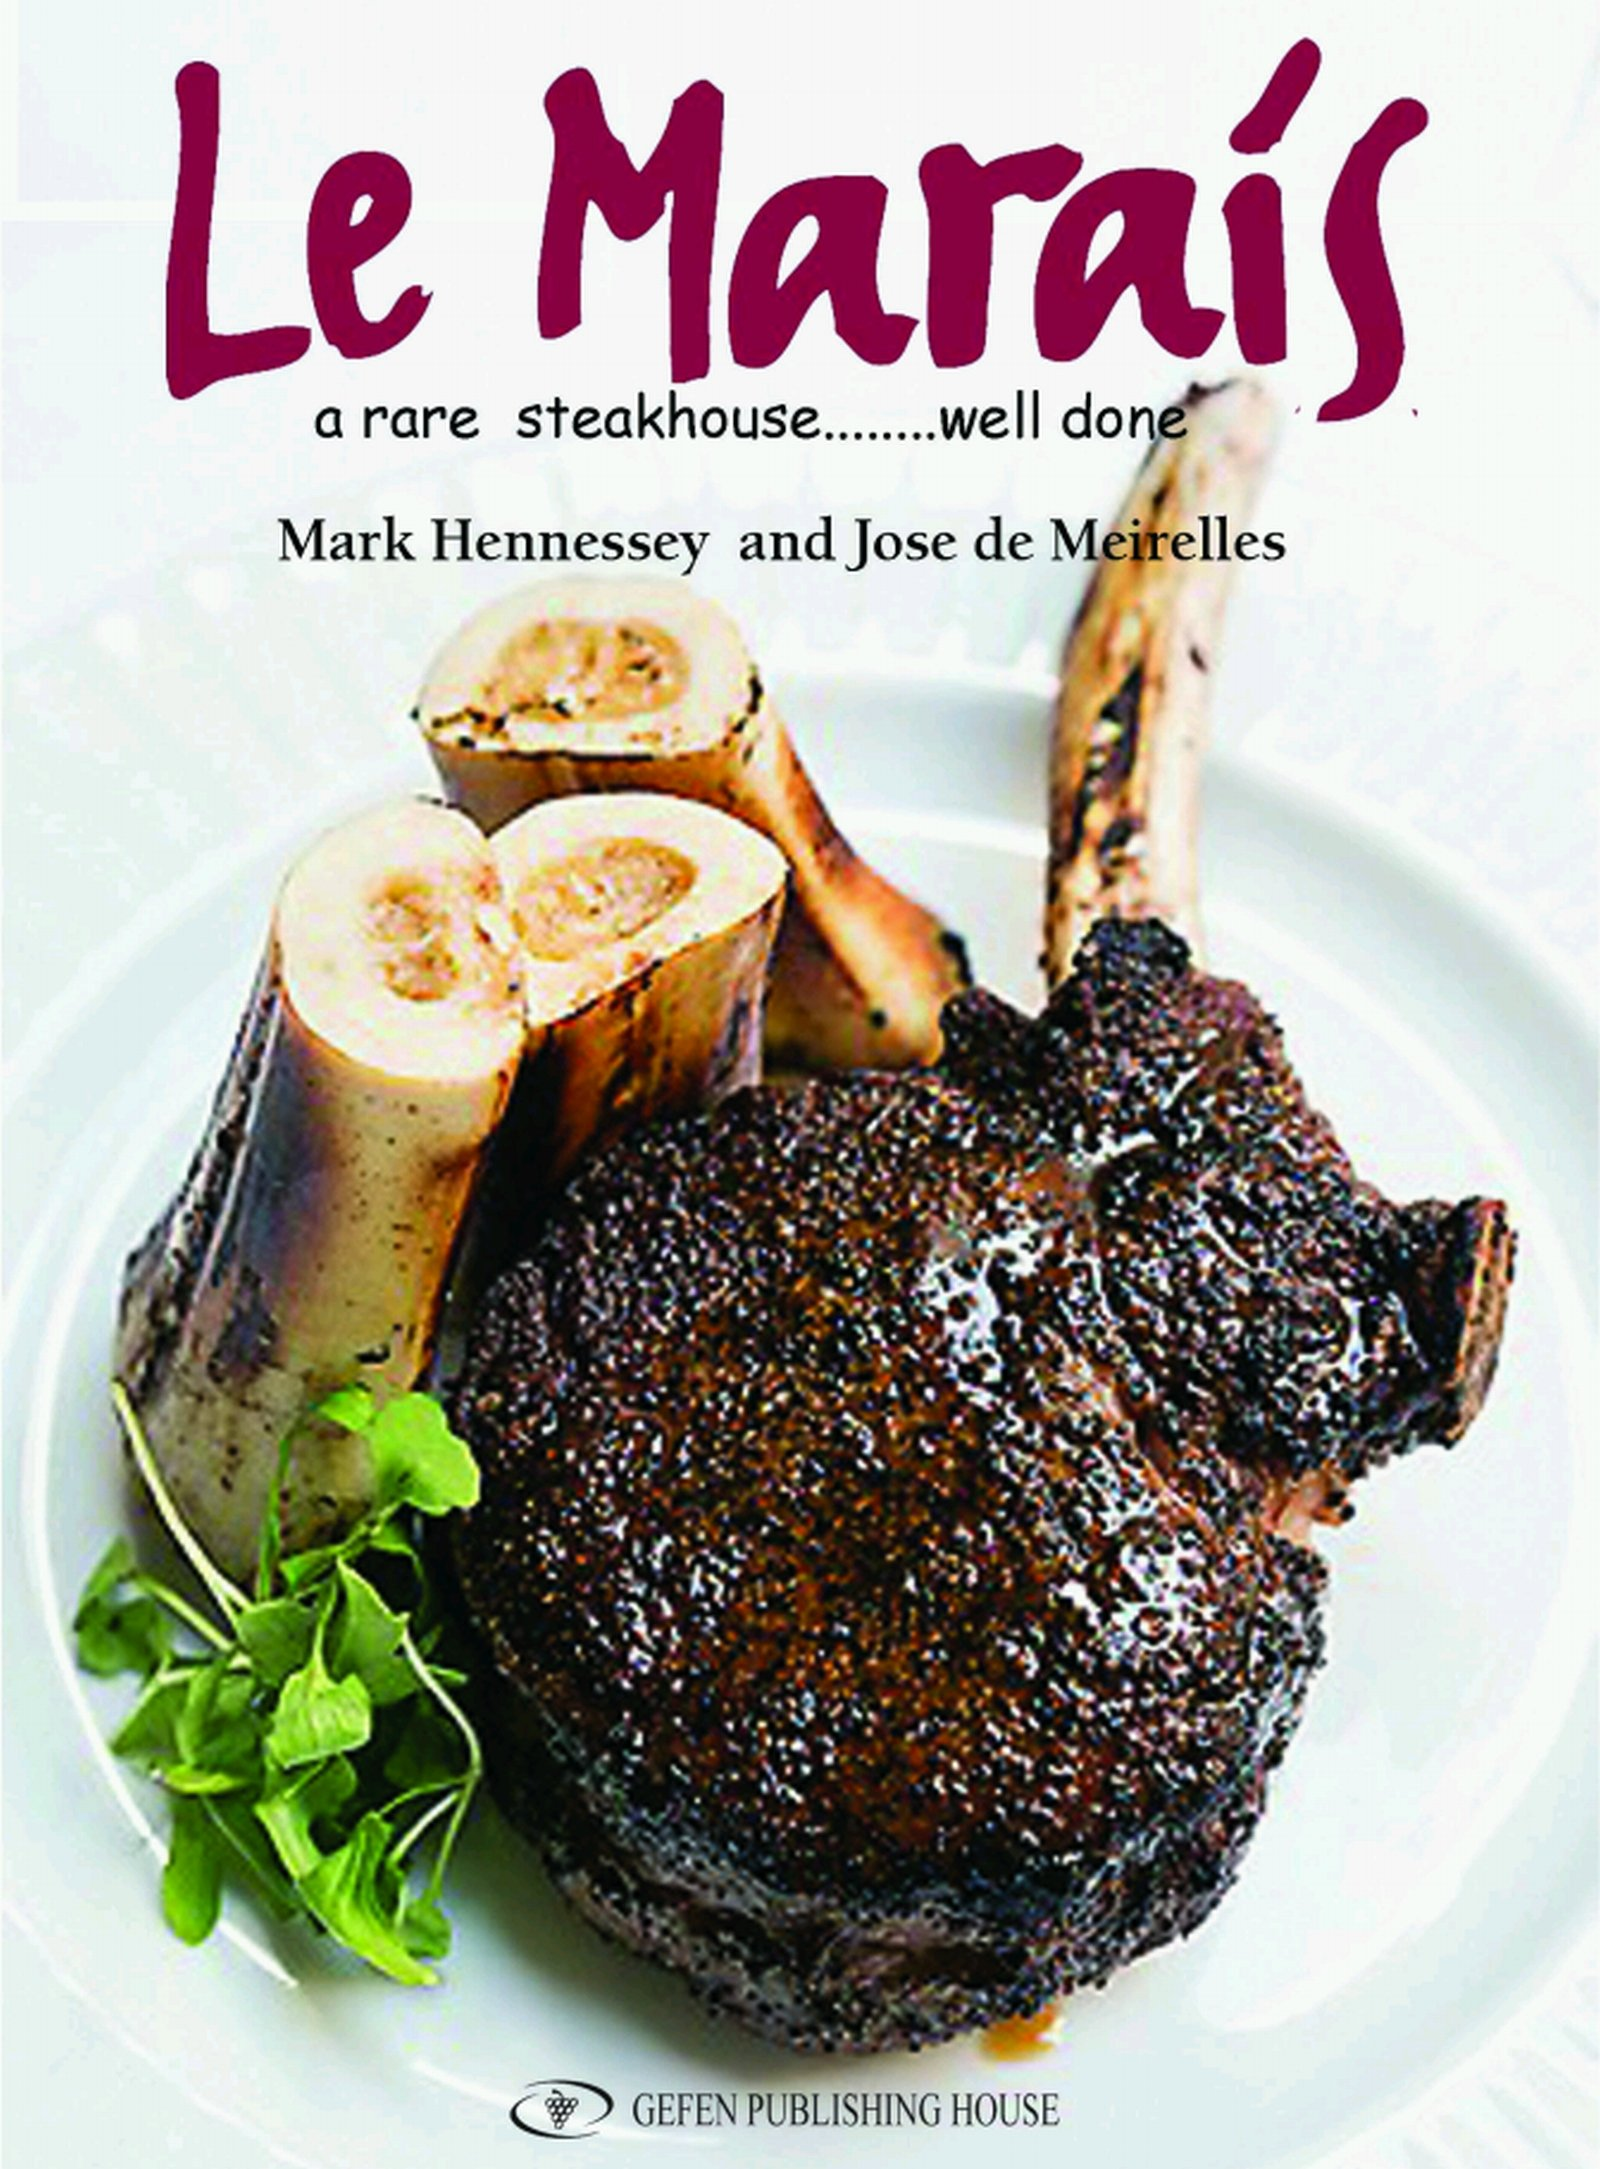 Le Marais: A Rare Steakhouse - Well Done